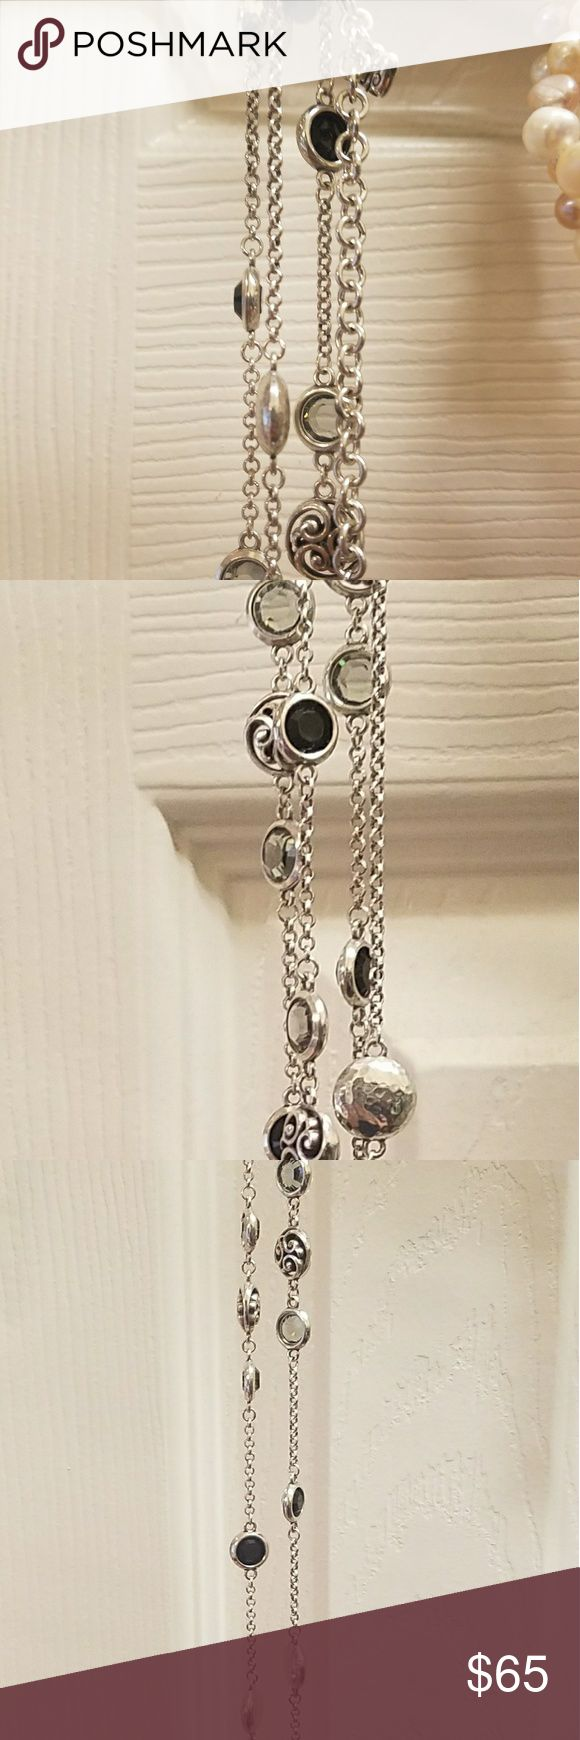 Long, layerable Brighton necklace Europa clear, silver and black chain necklace. Brighton Jewelry Necklaces